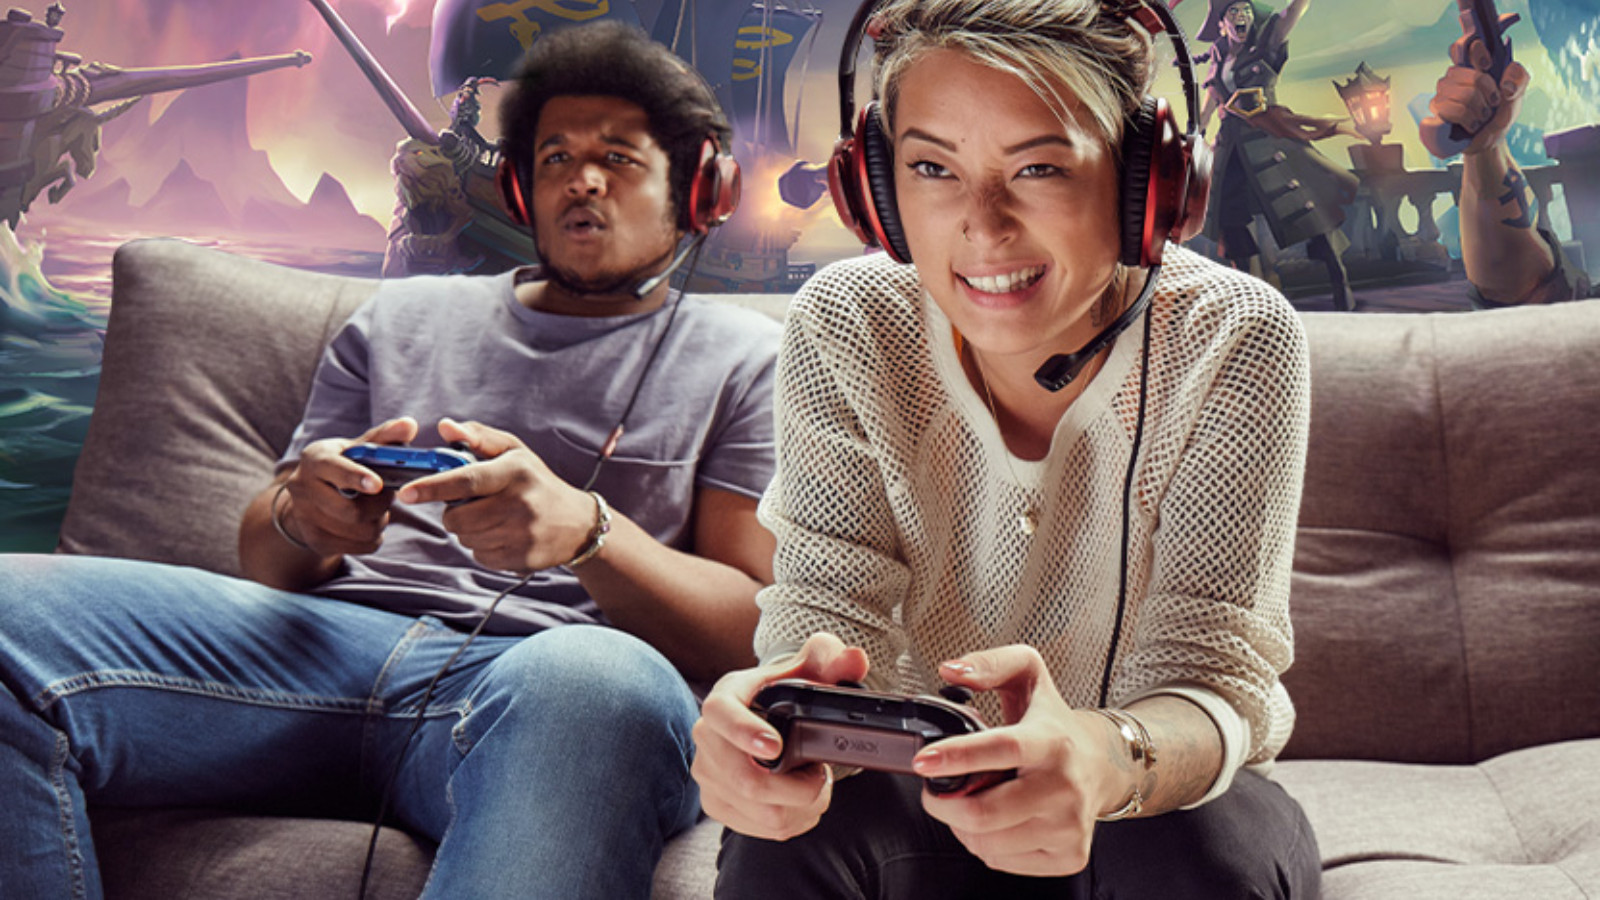 Gamers playing on a couch